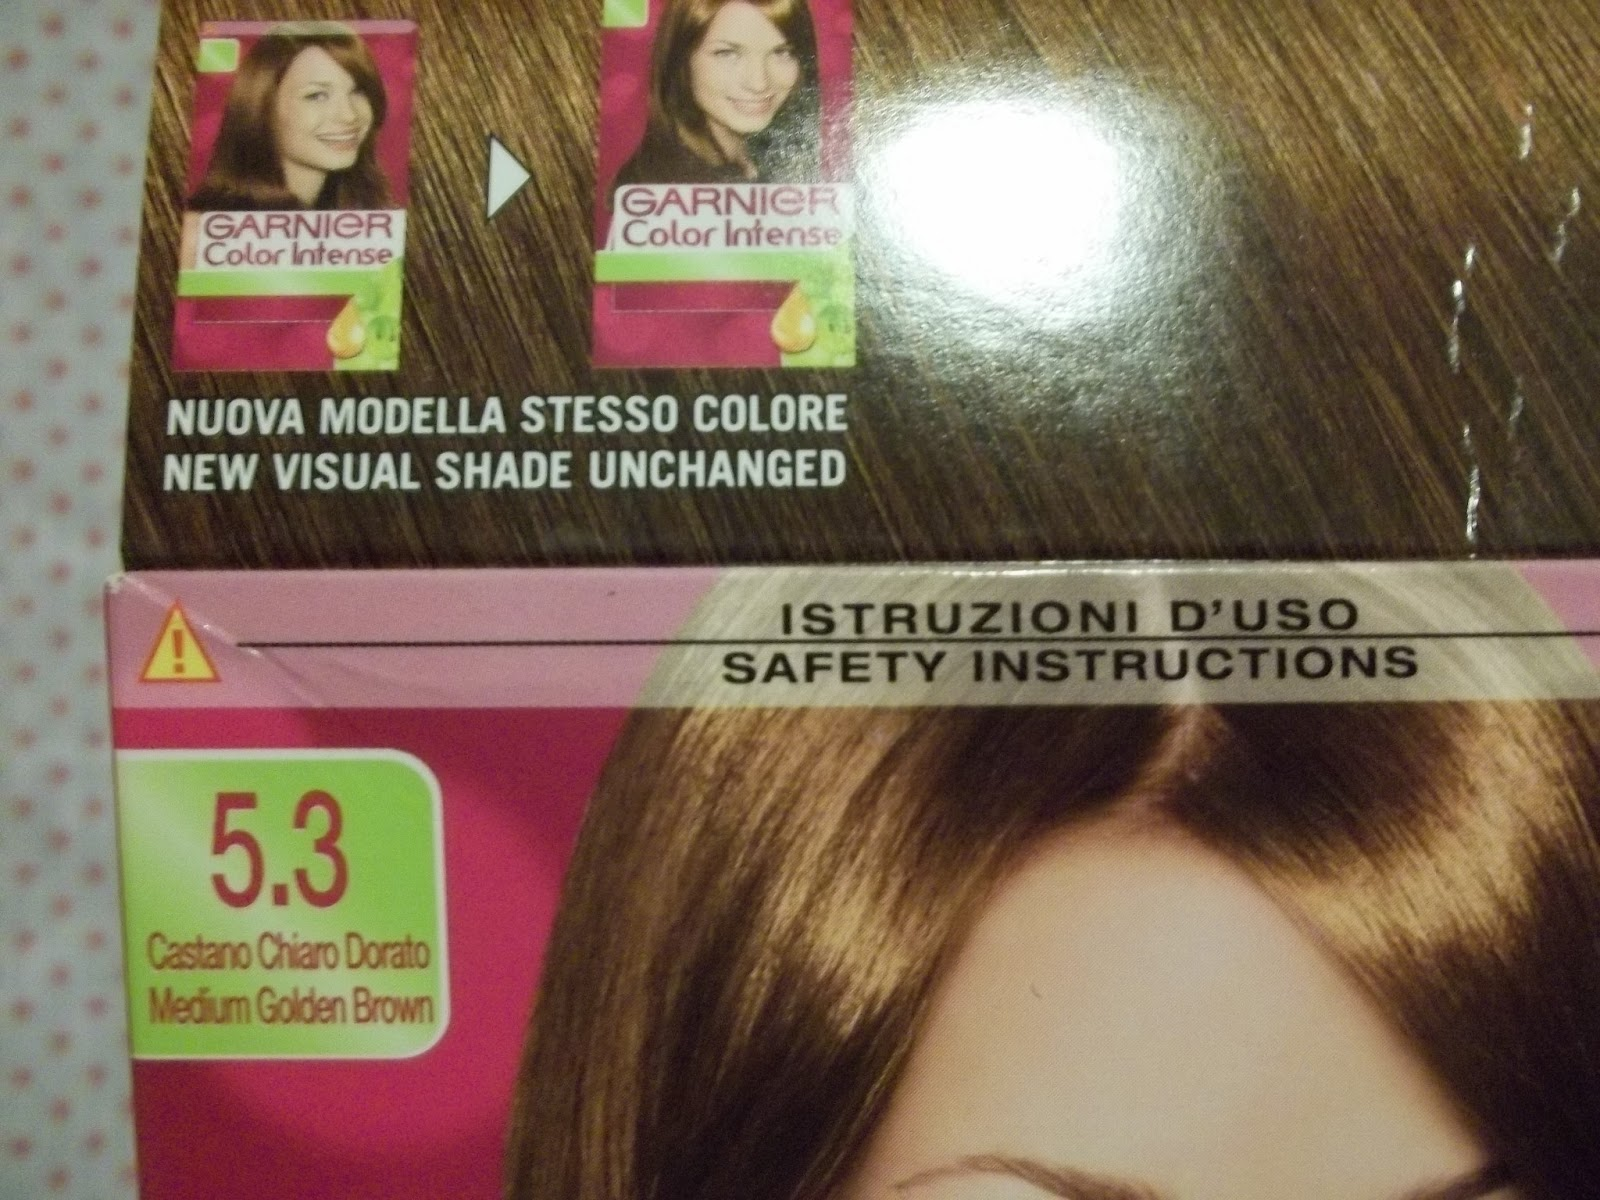 A weekend without make up tintura per capelli garnier color intense